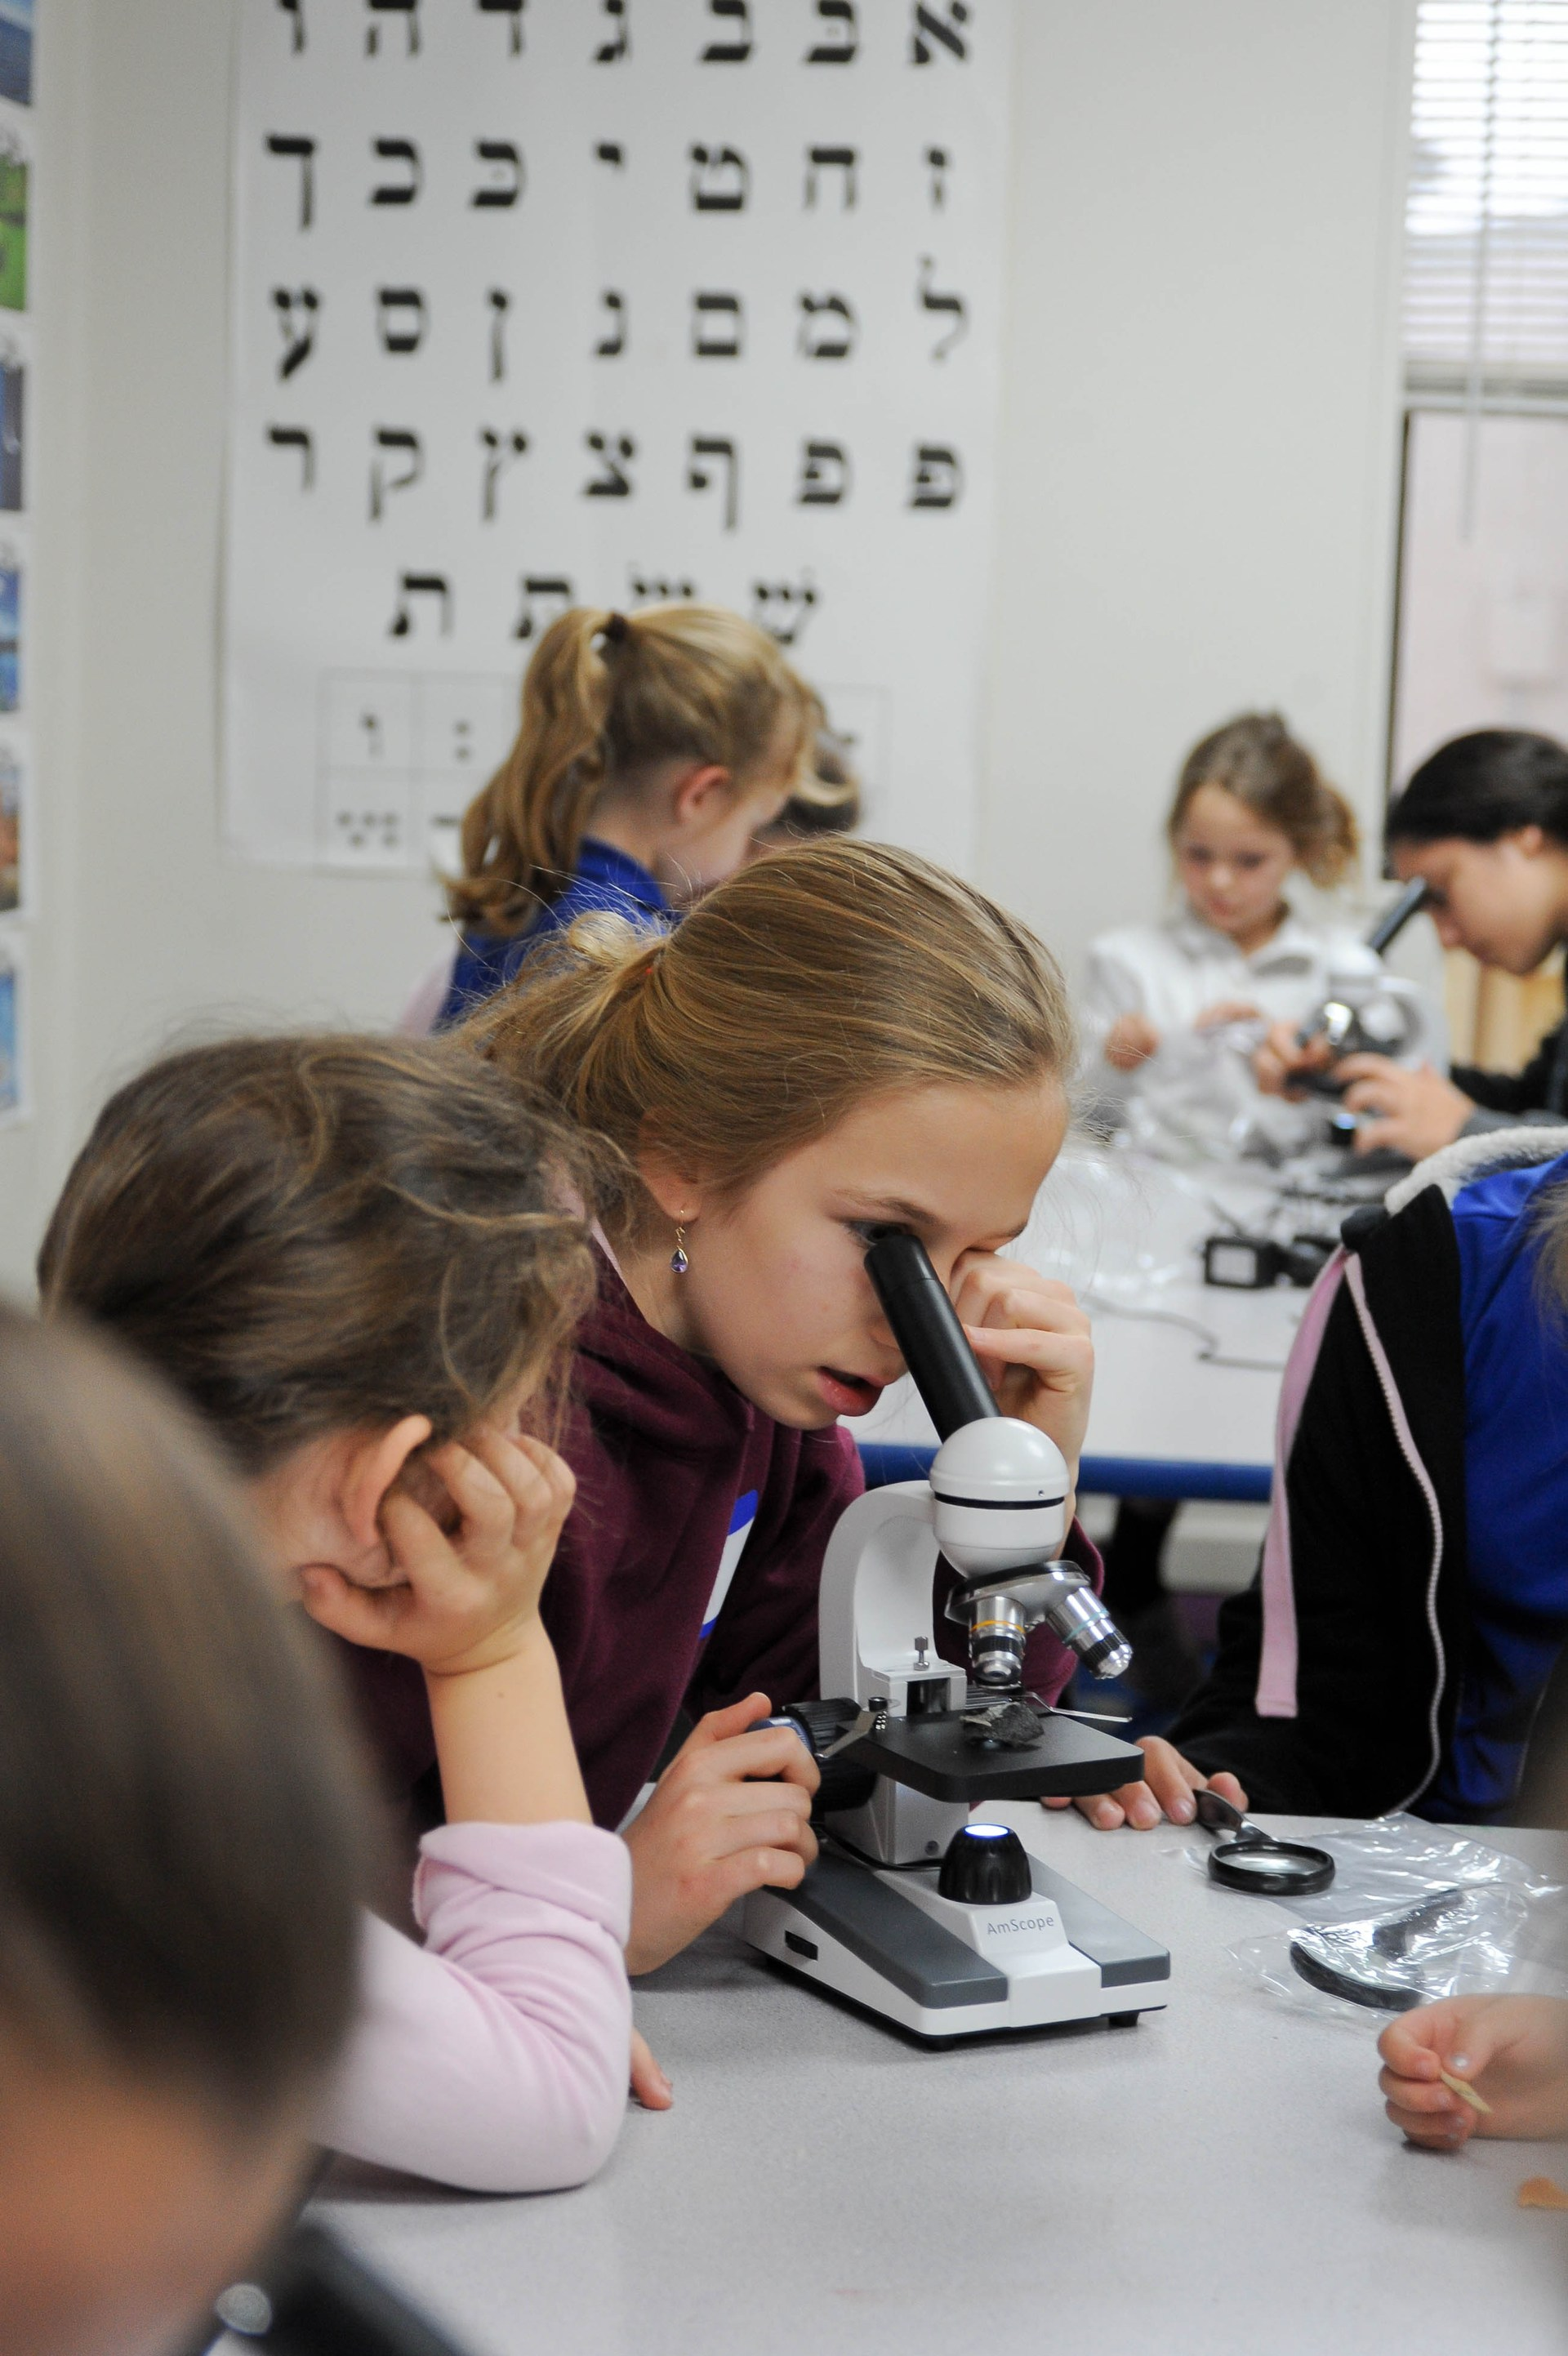 girl looking in a microscope